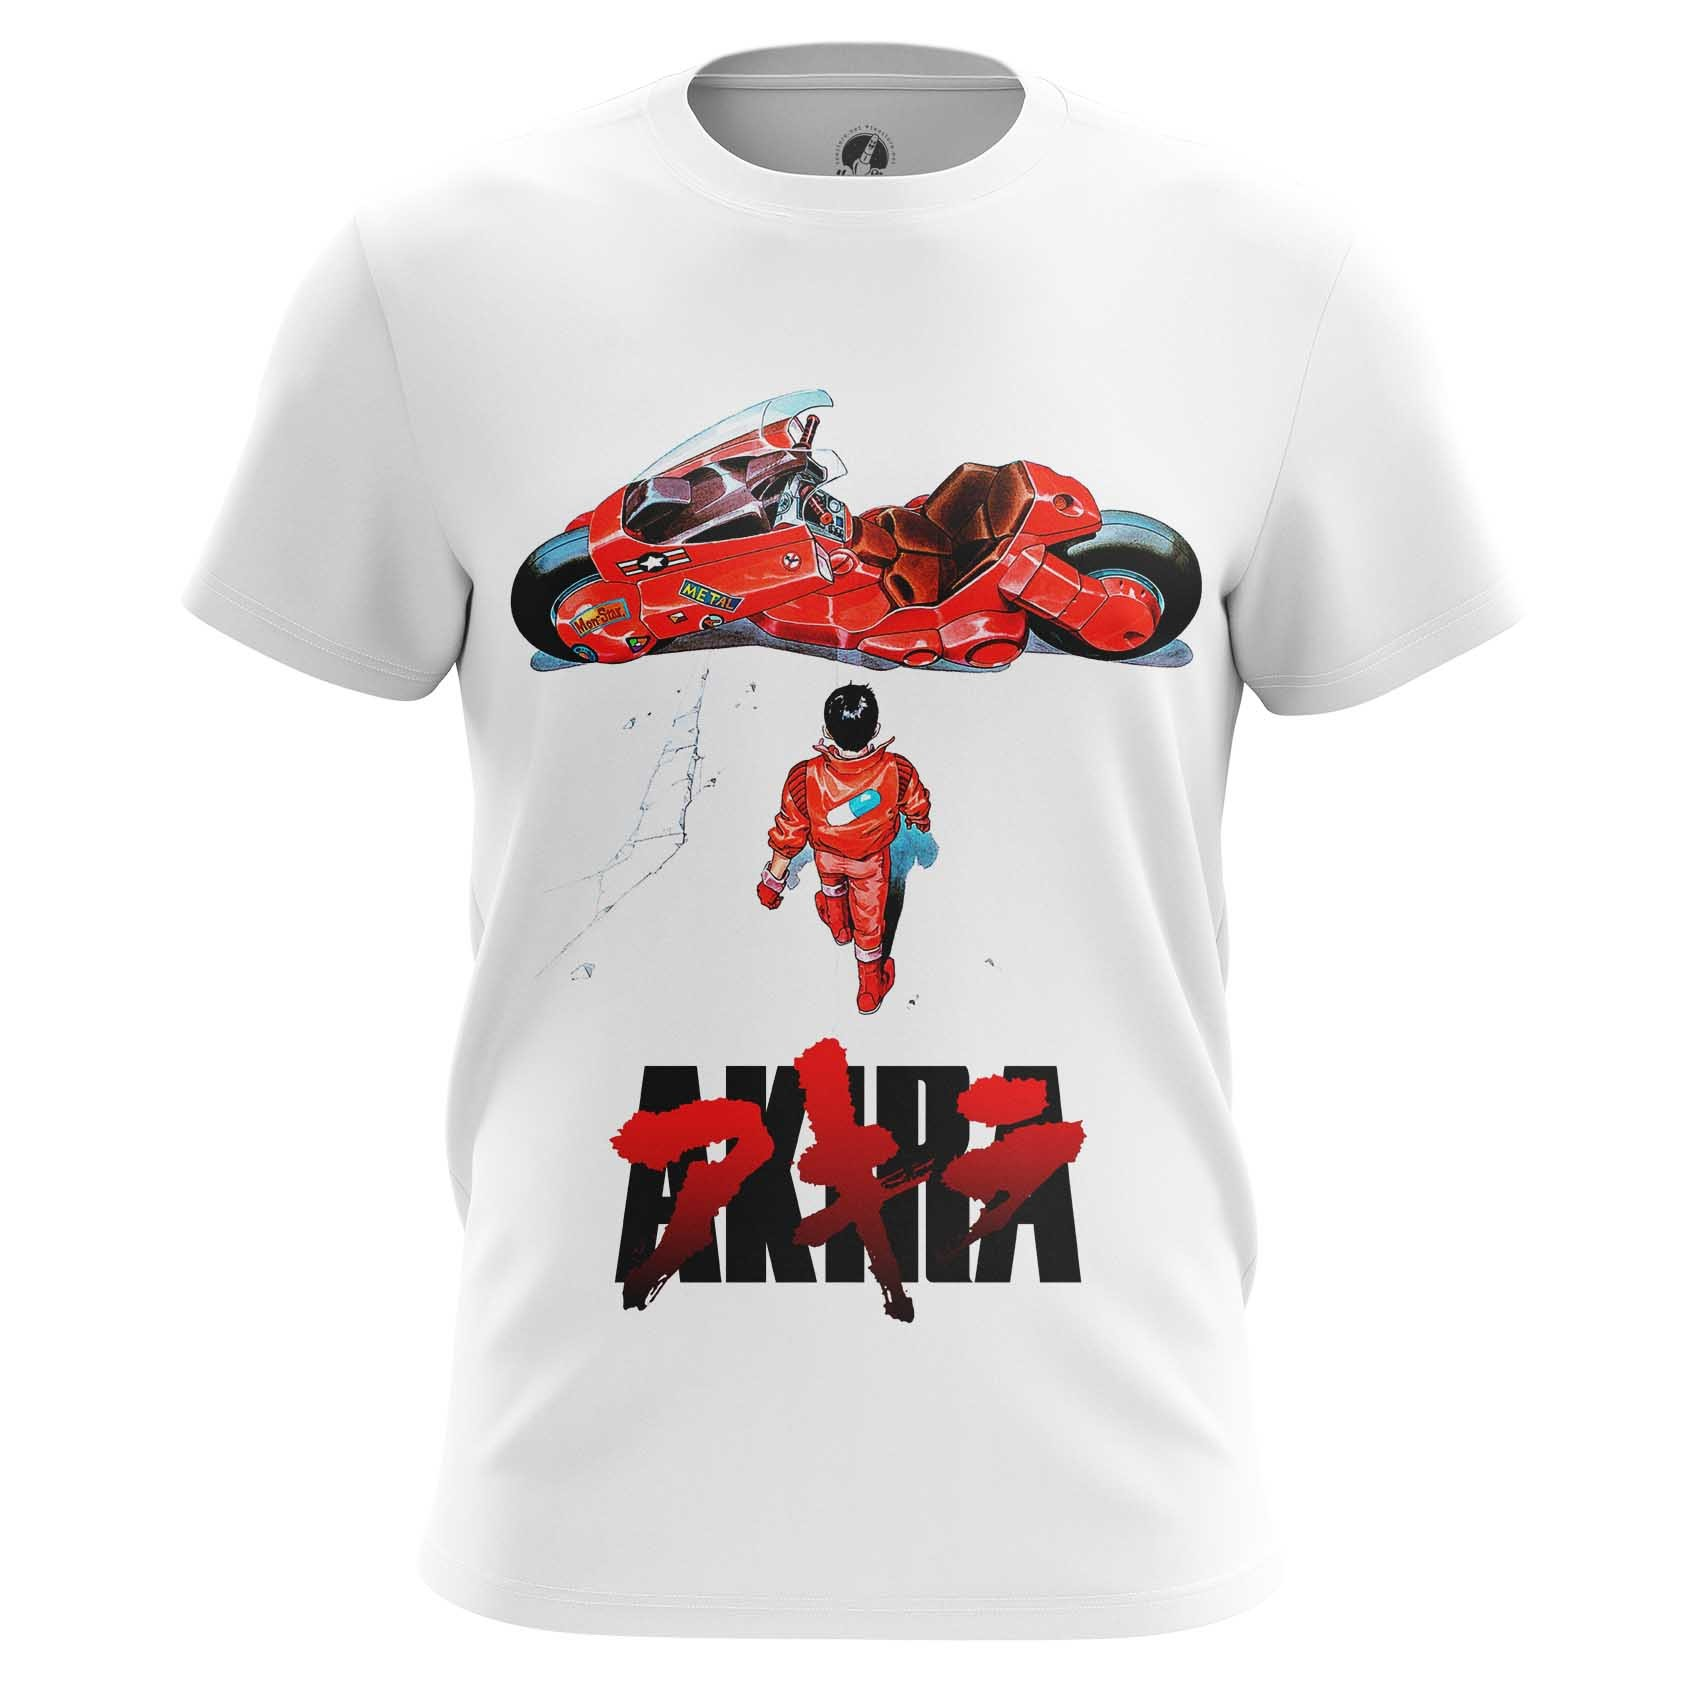 Collectibles T-Shirt Akira 1988 Animated Post-Apocalyptic